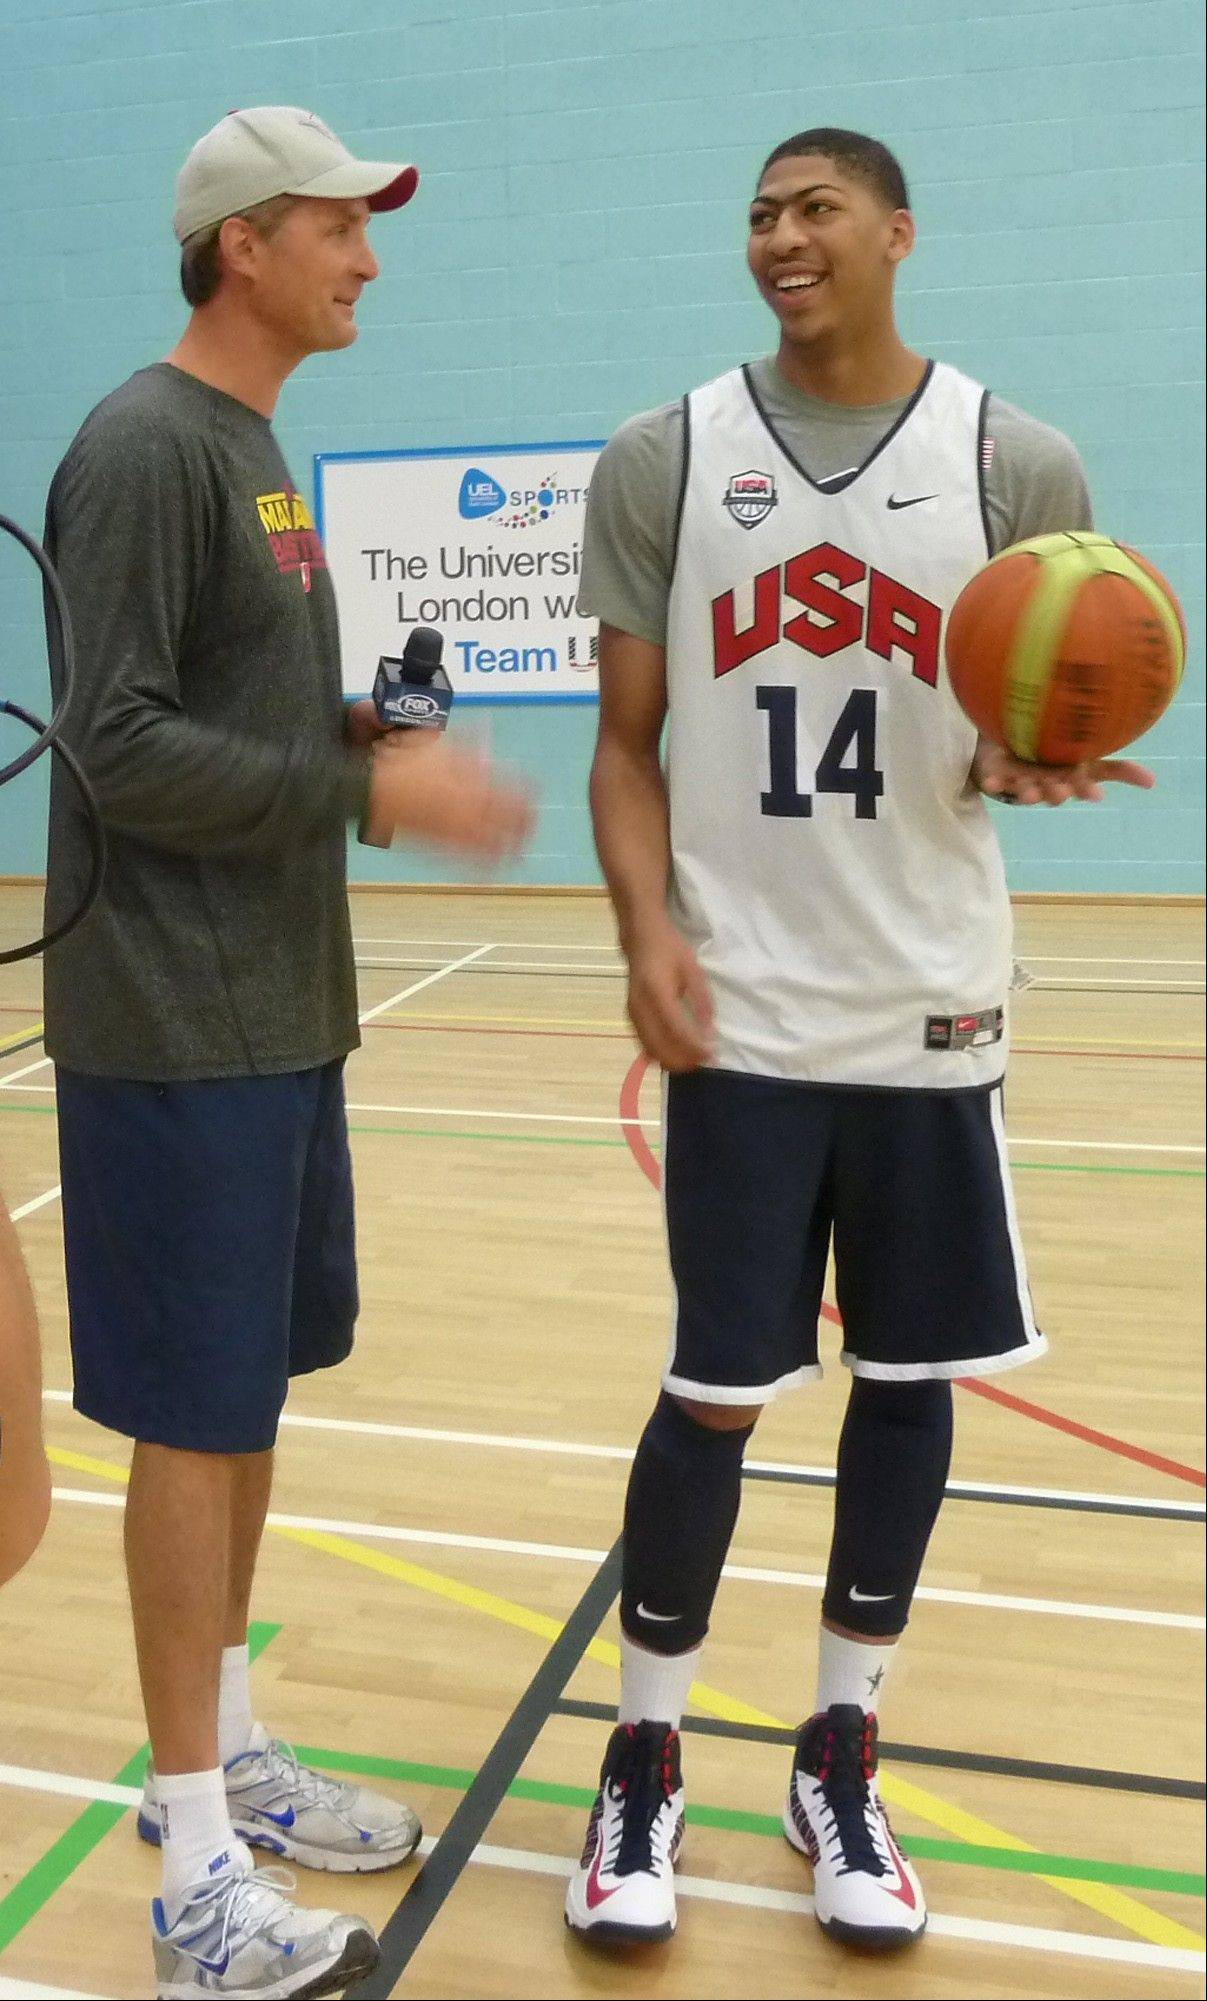 Former U.S. Olympic basketball and NBA player Christian Laettner, left, talks with current U.S. Olympic team member Anthony Davis, Monday during practice.